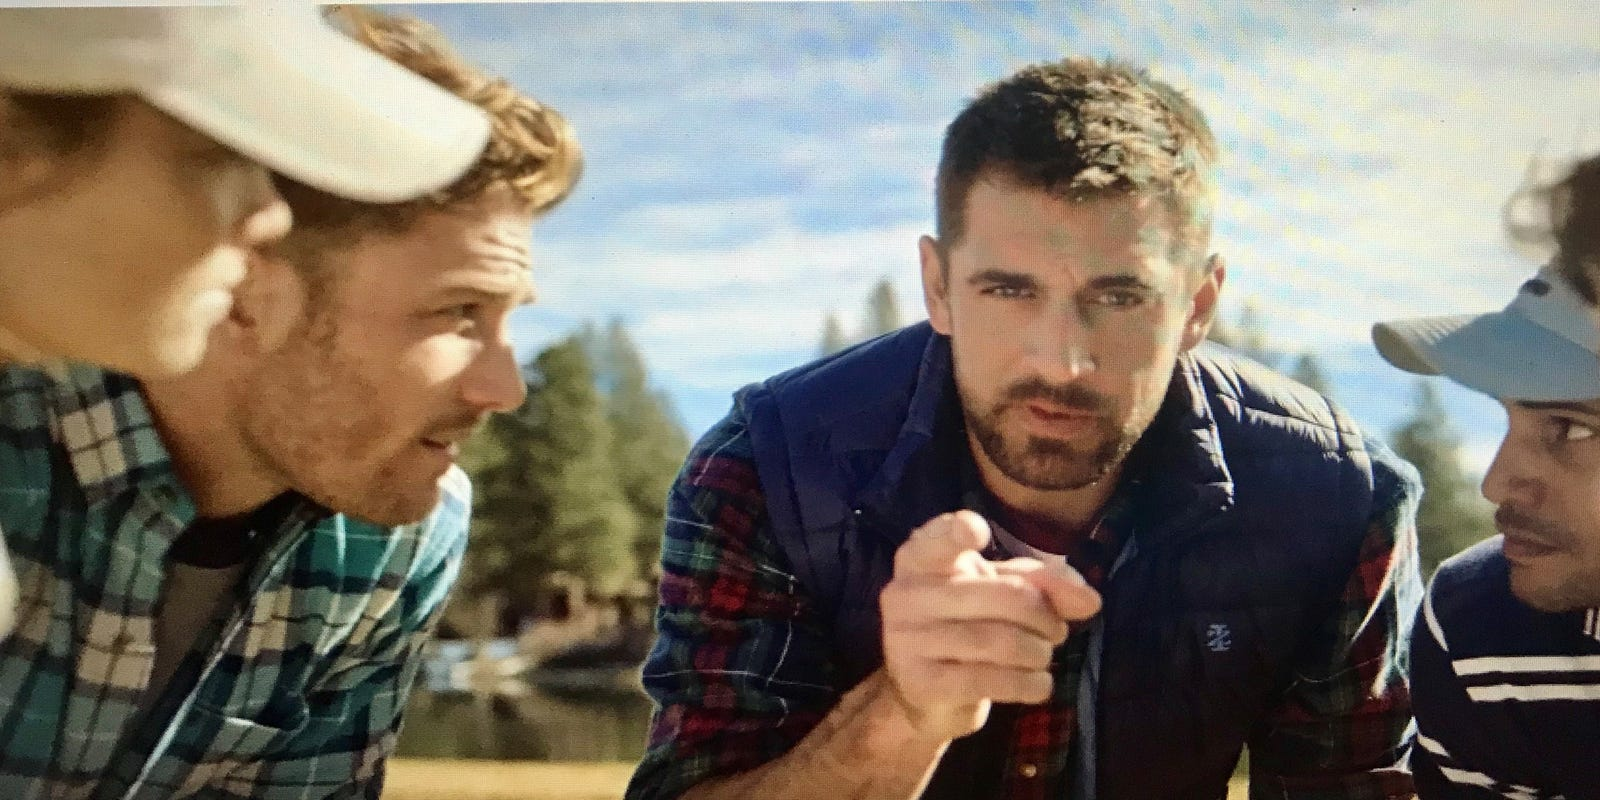 Aaron Rodgers Snl S Colin Jost Team Up In New Ad For Izod